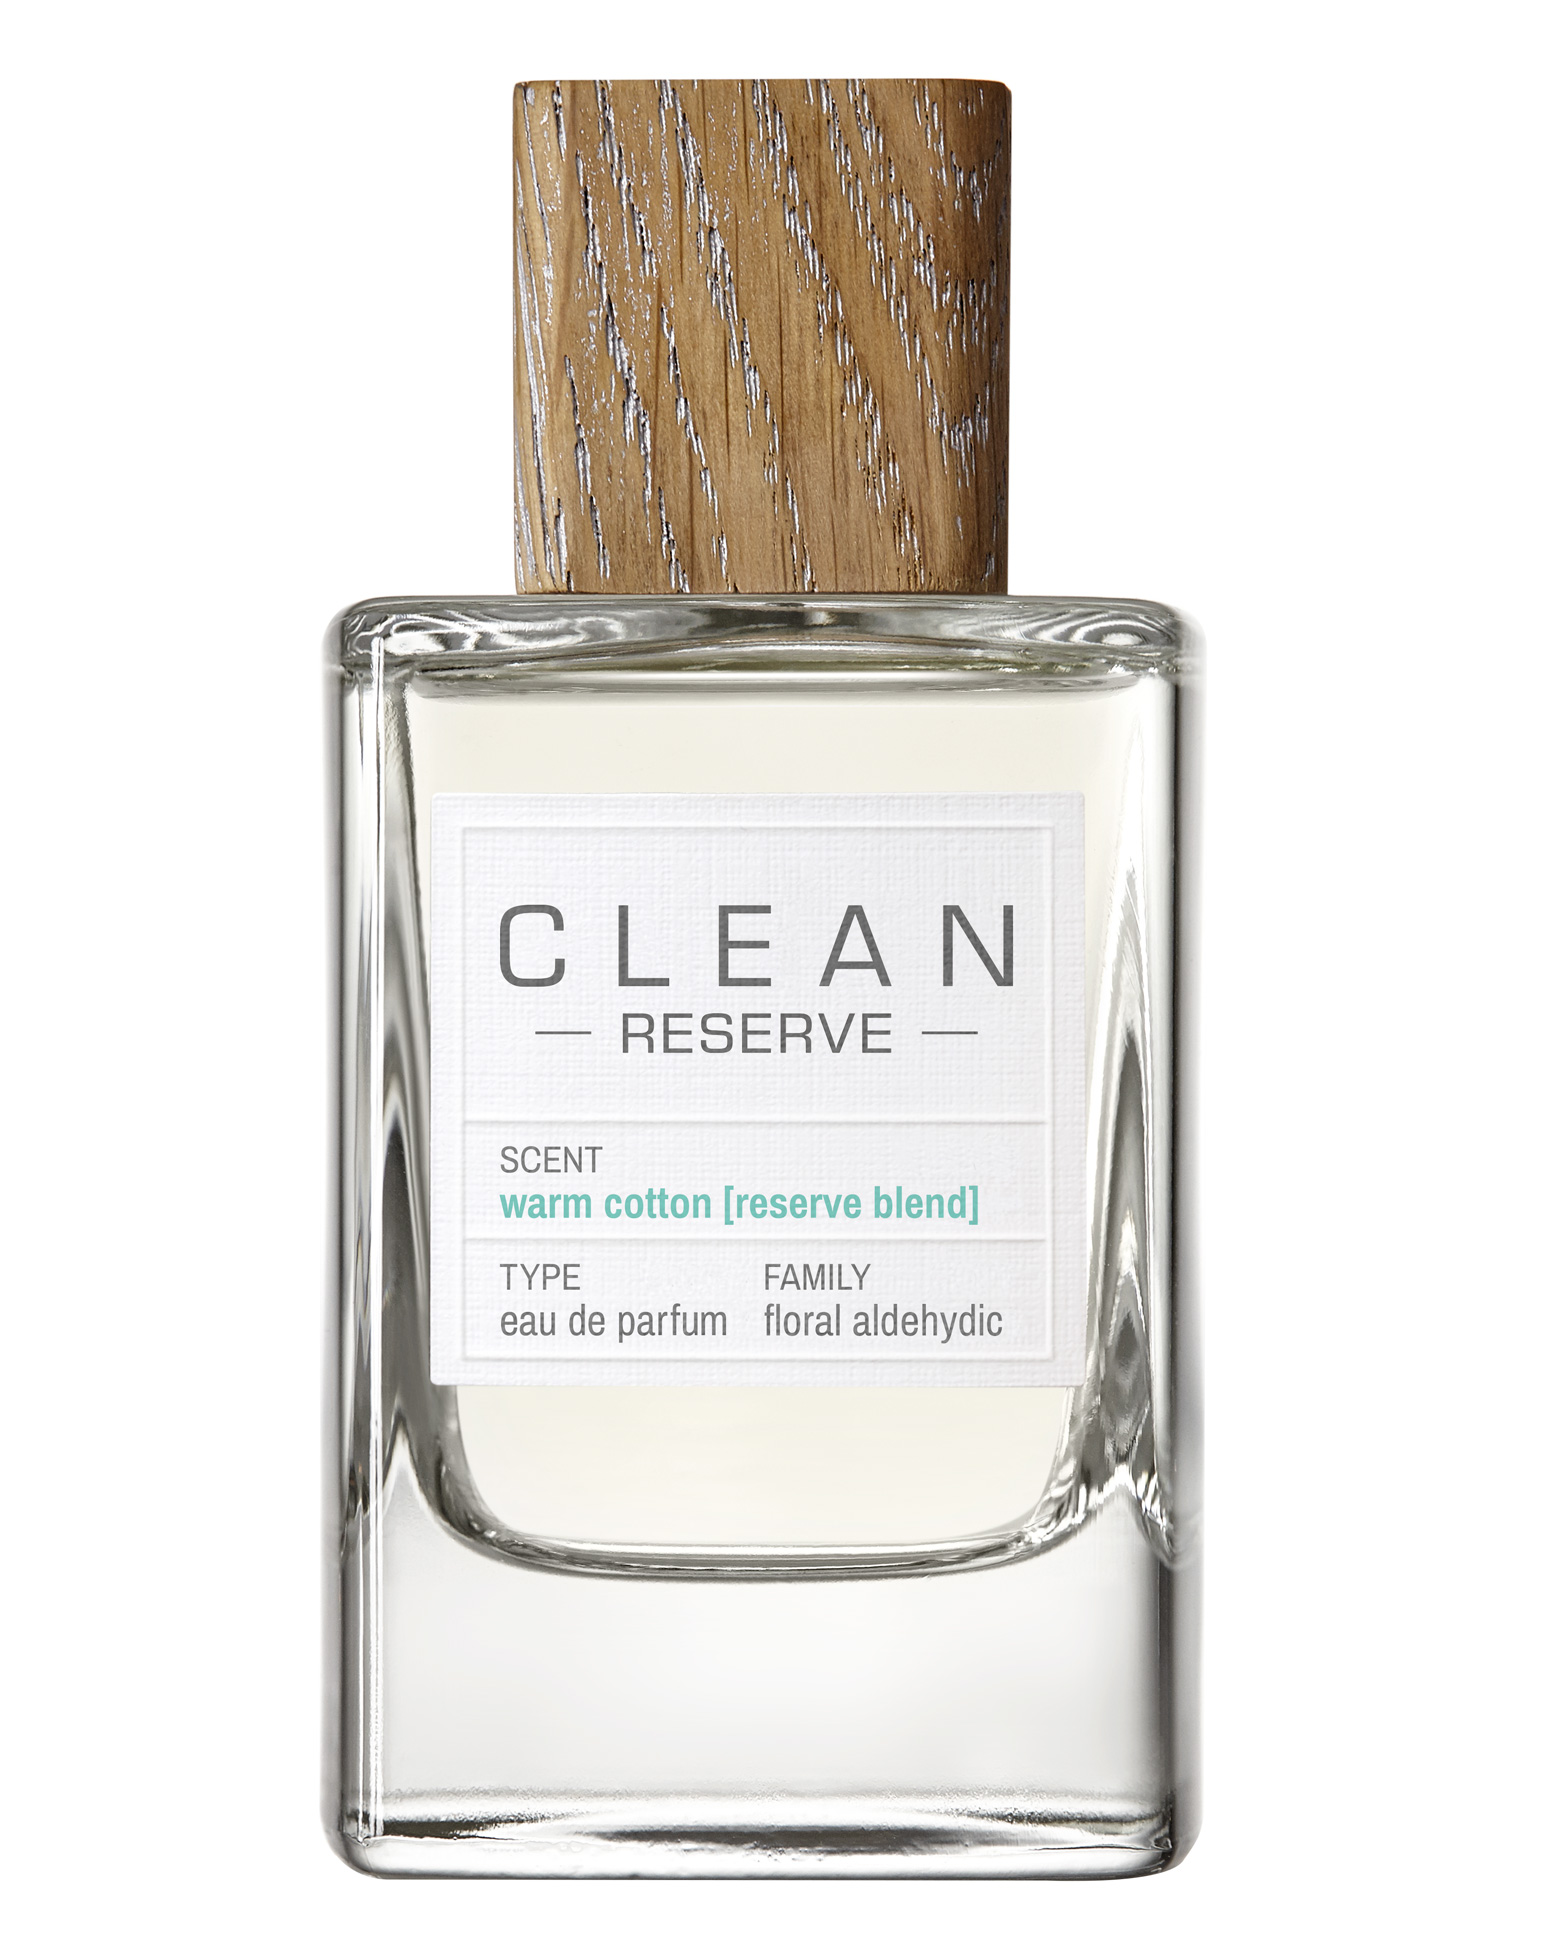 Clean Reserve Warm Cotton Cult Beauty Miss Charming Fragrance Mist